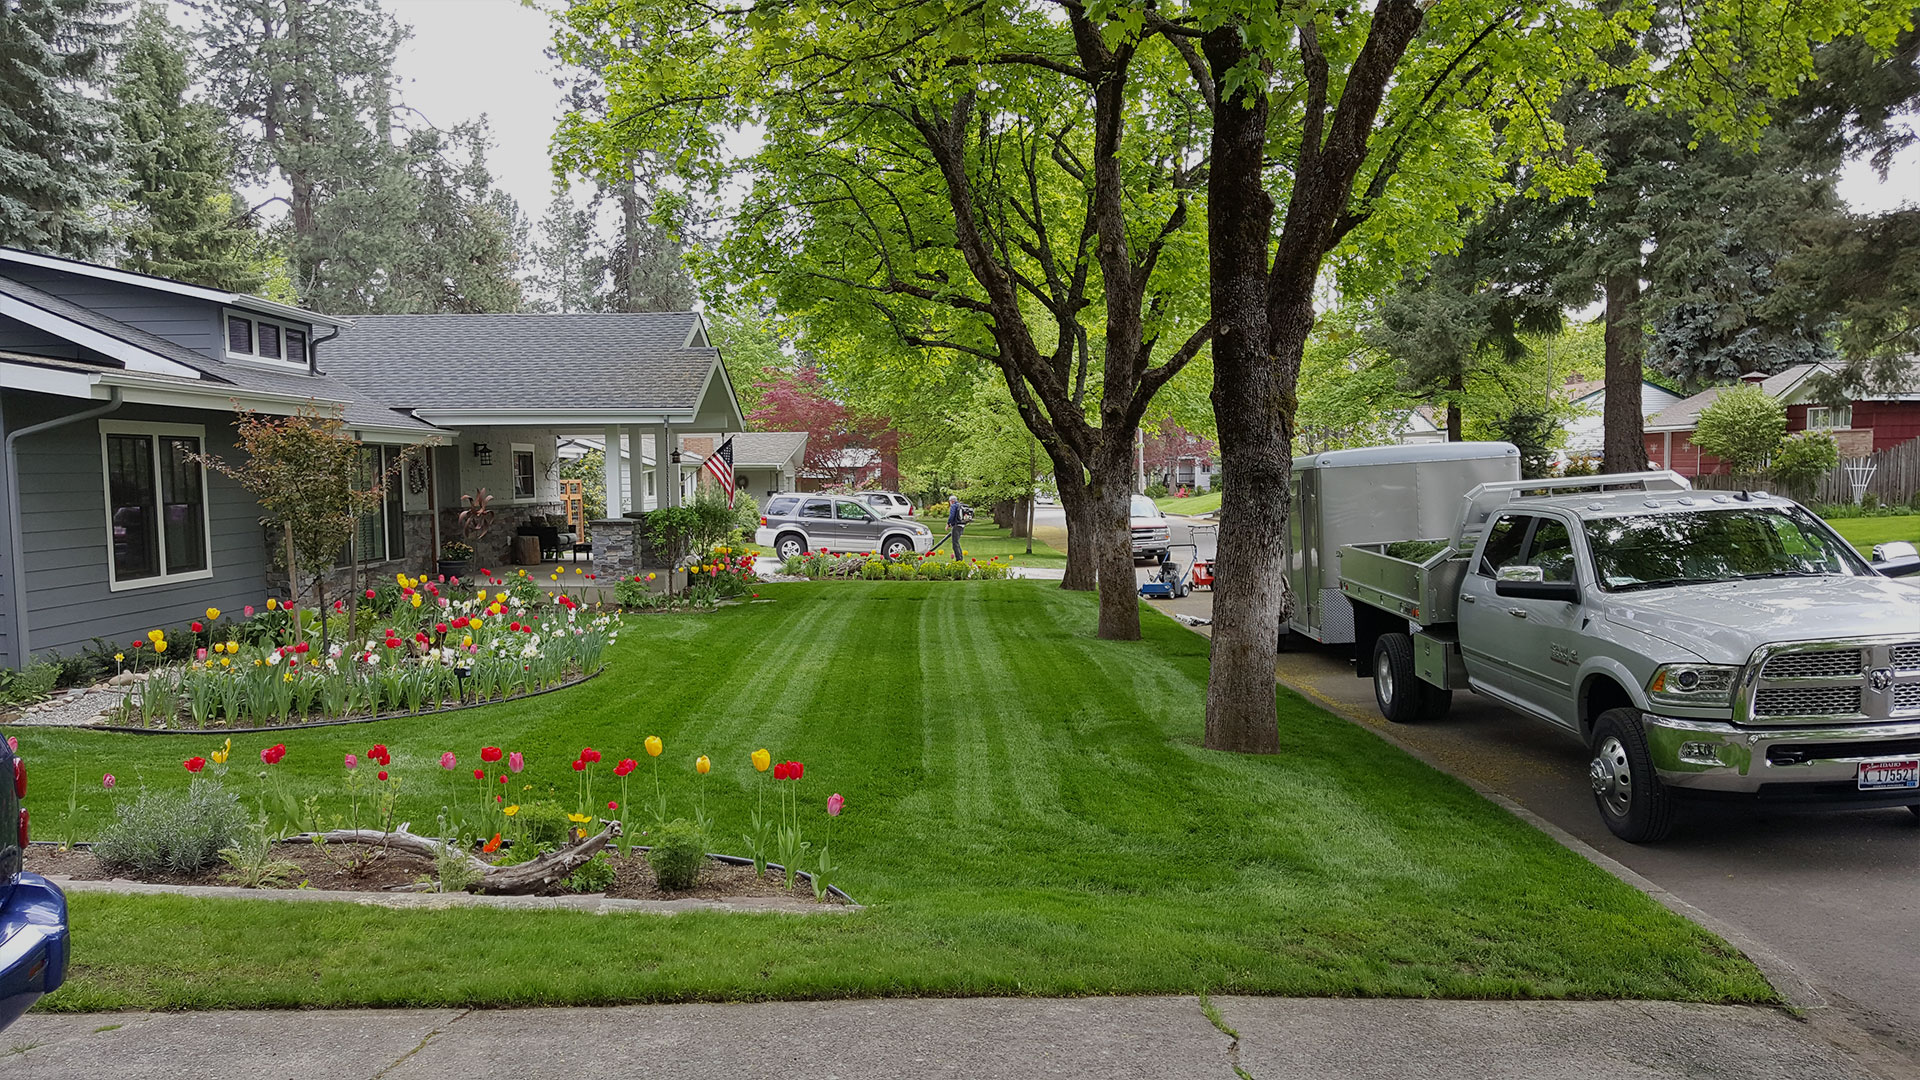 LakeView Lawncare & Landscape Co. Landscaping, Yard Maintenance and Sprinkler Repairs slide 6